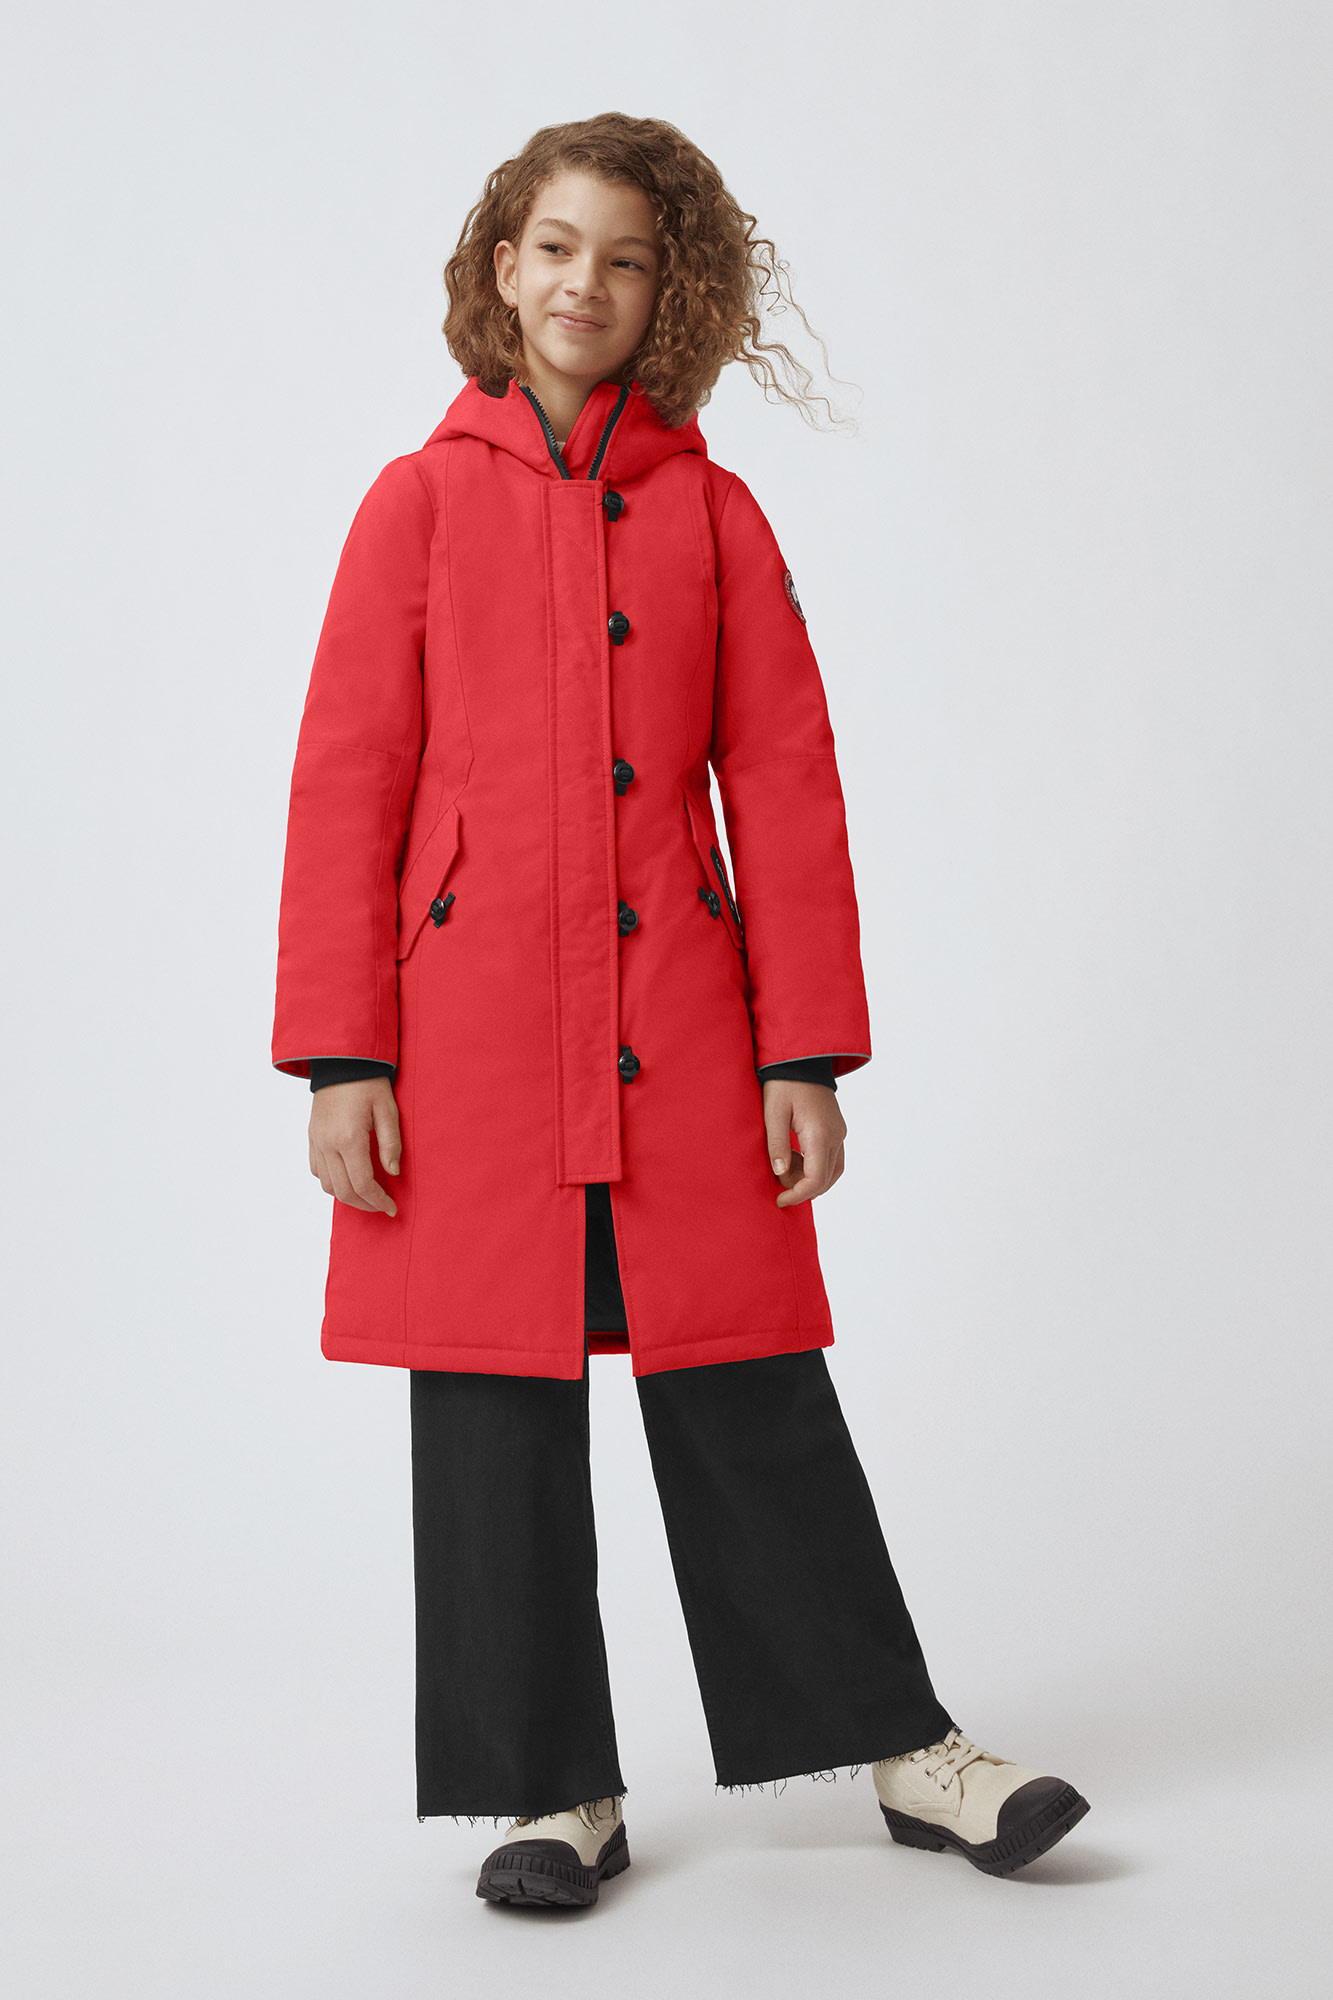 The Red Parka